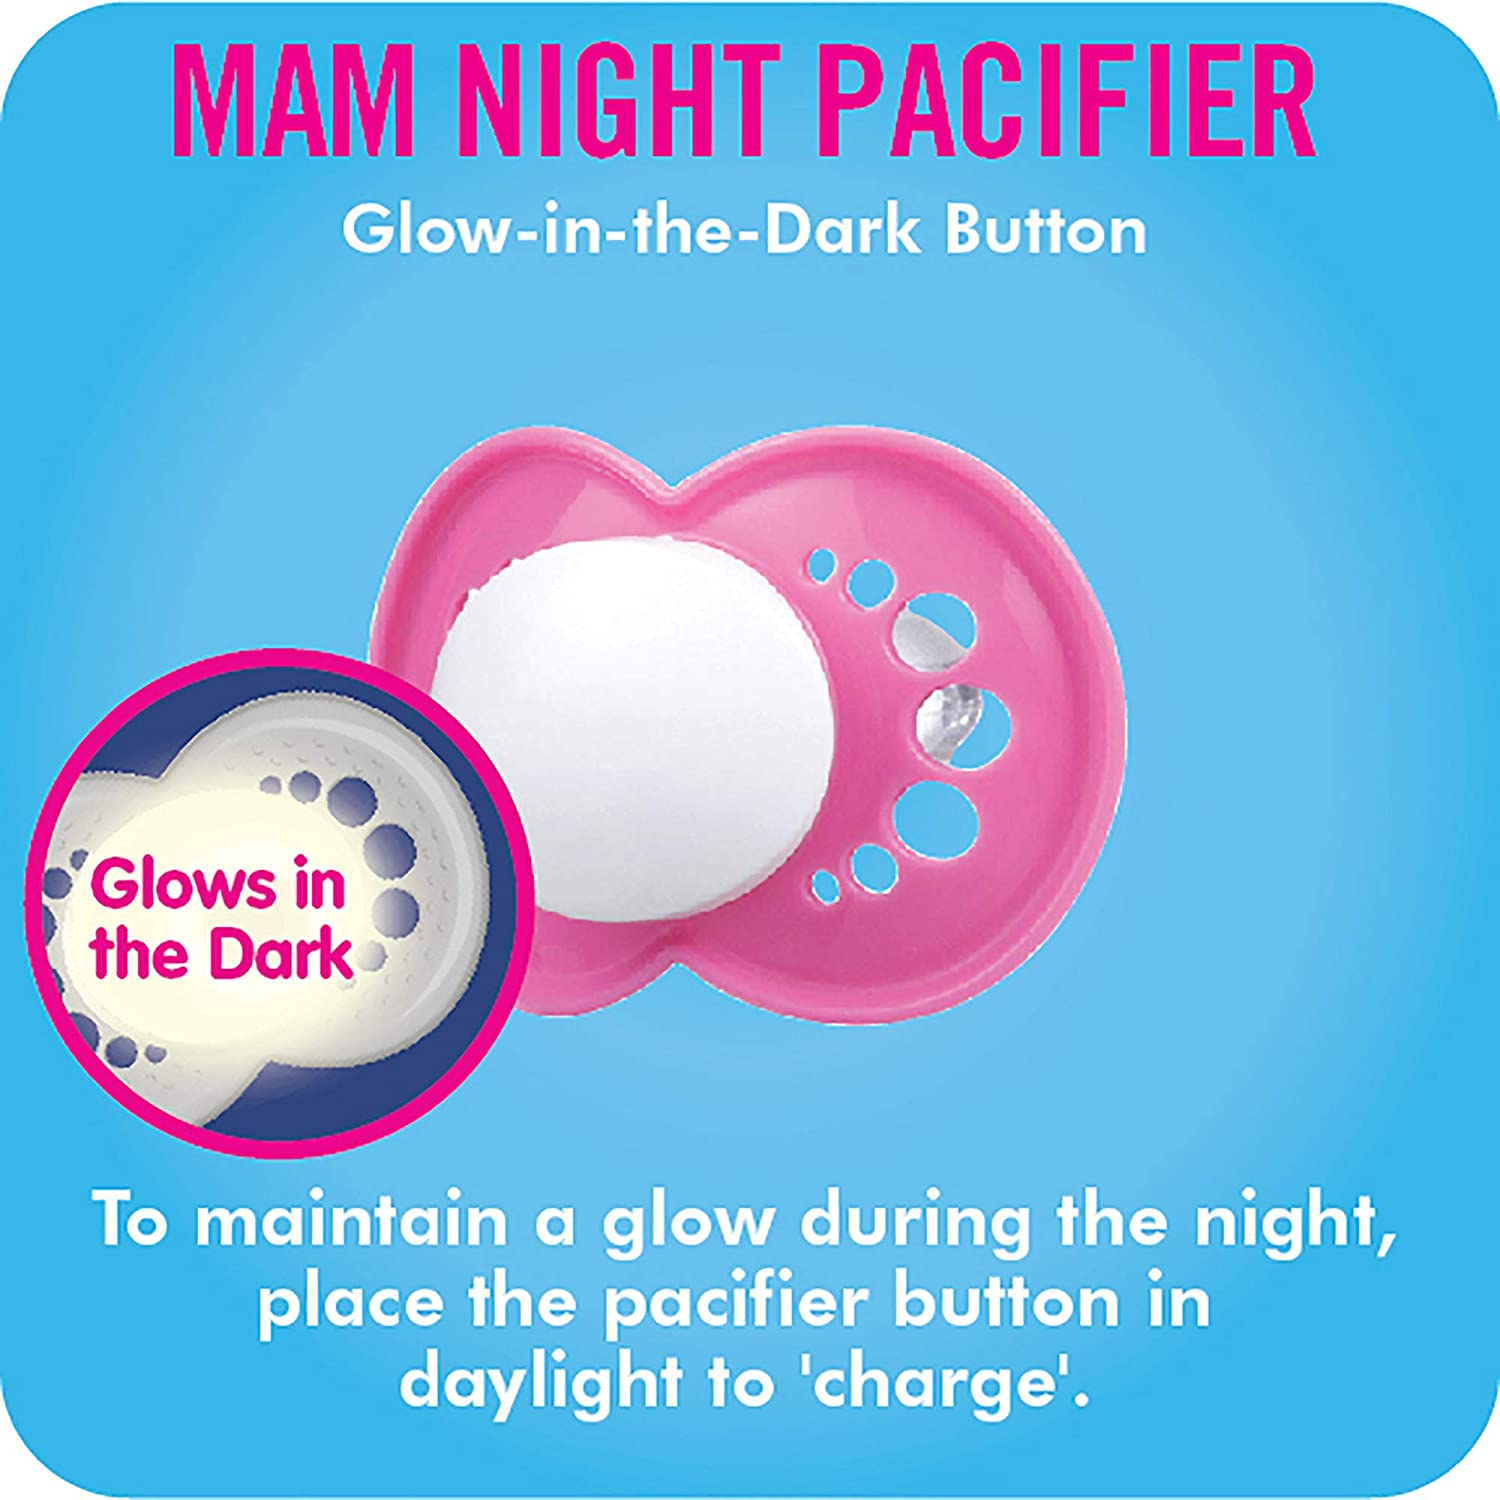 MAM Night Glow in the Dark Silicone Pacifier, Boy, 6 Plus Months, 2-Count by MAM